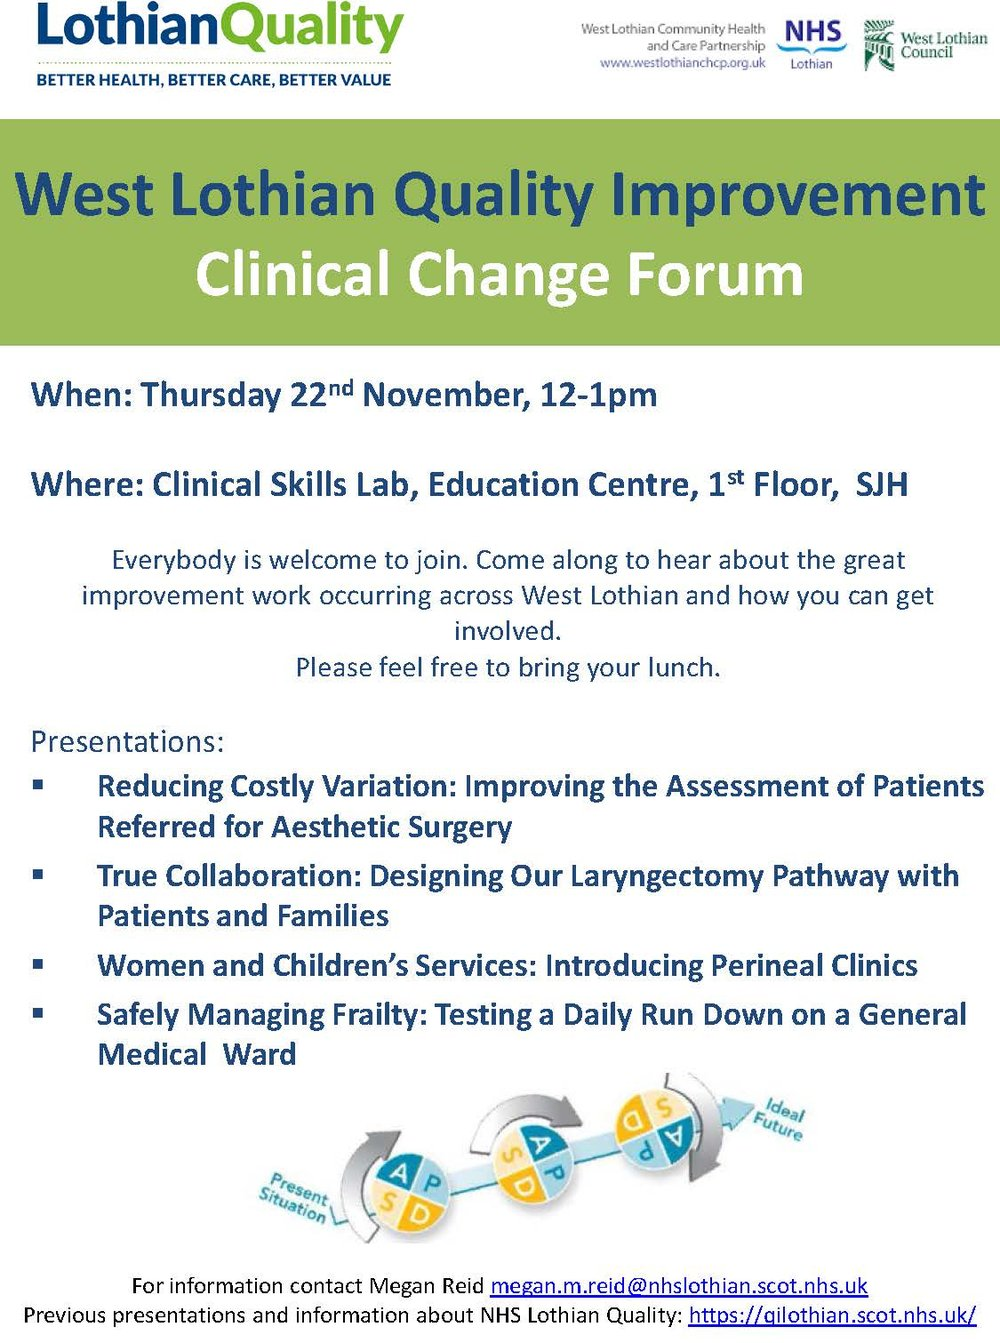 Clinical Change Forum 22nd November Poster.jpg